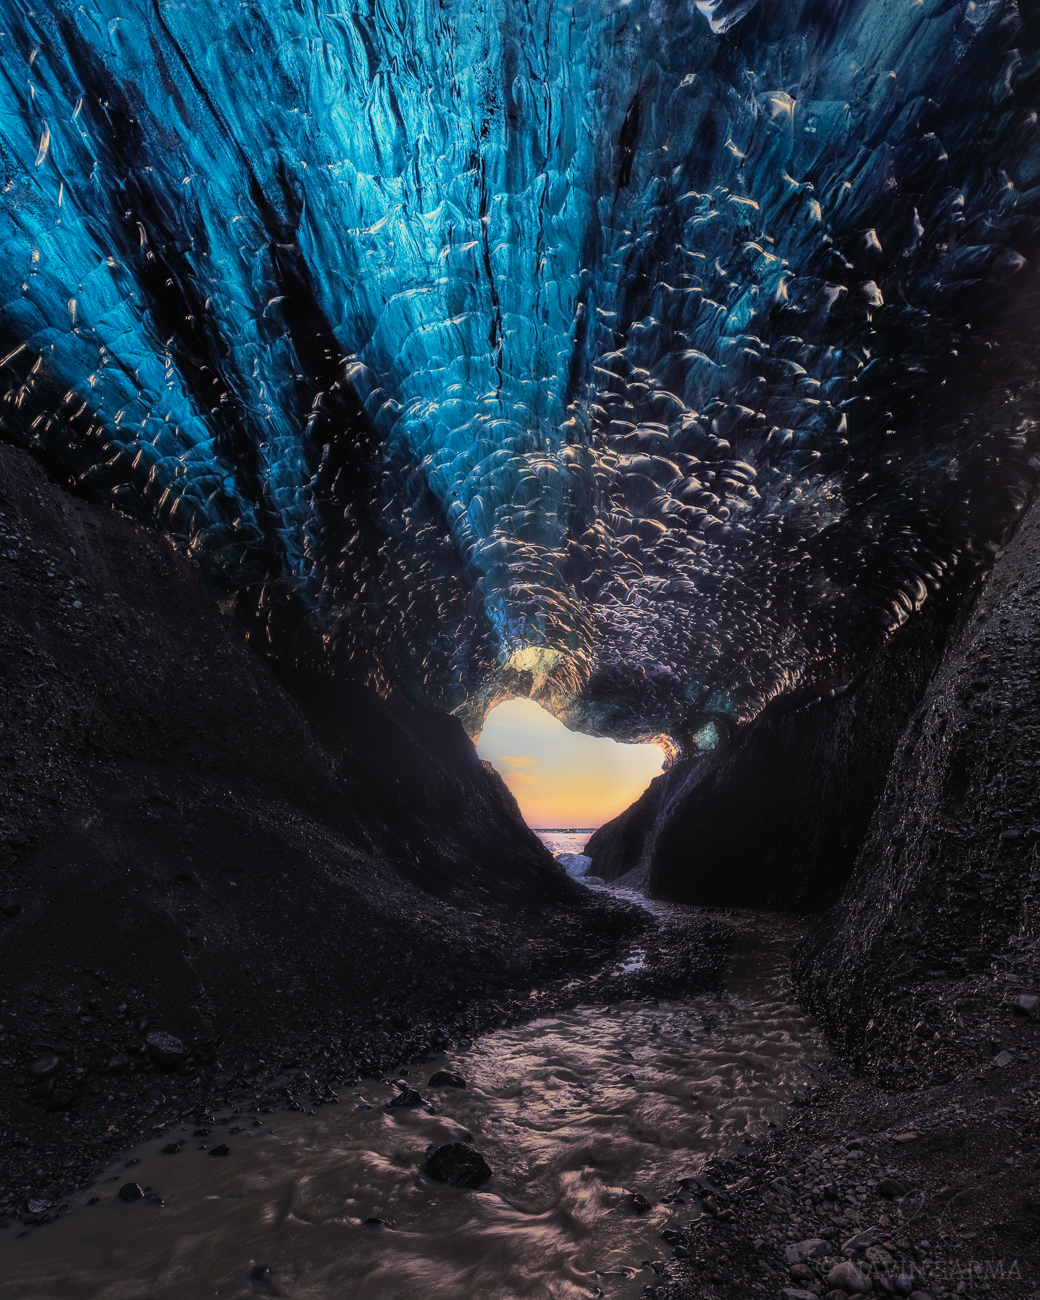 Under the Cave - Melting water rushes out from the glacier into the lagoon under a translucent ceiling of glacier ice